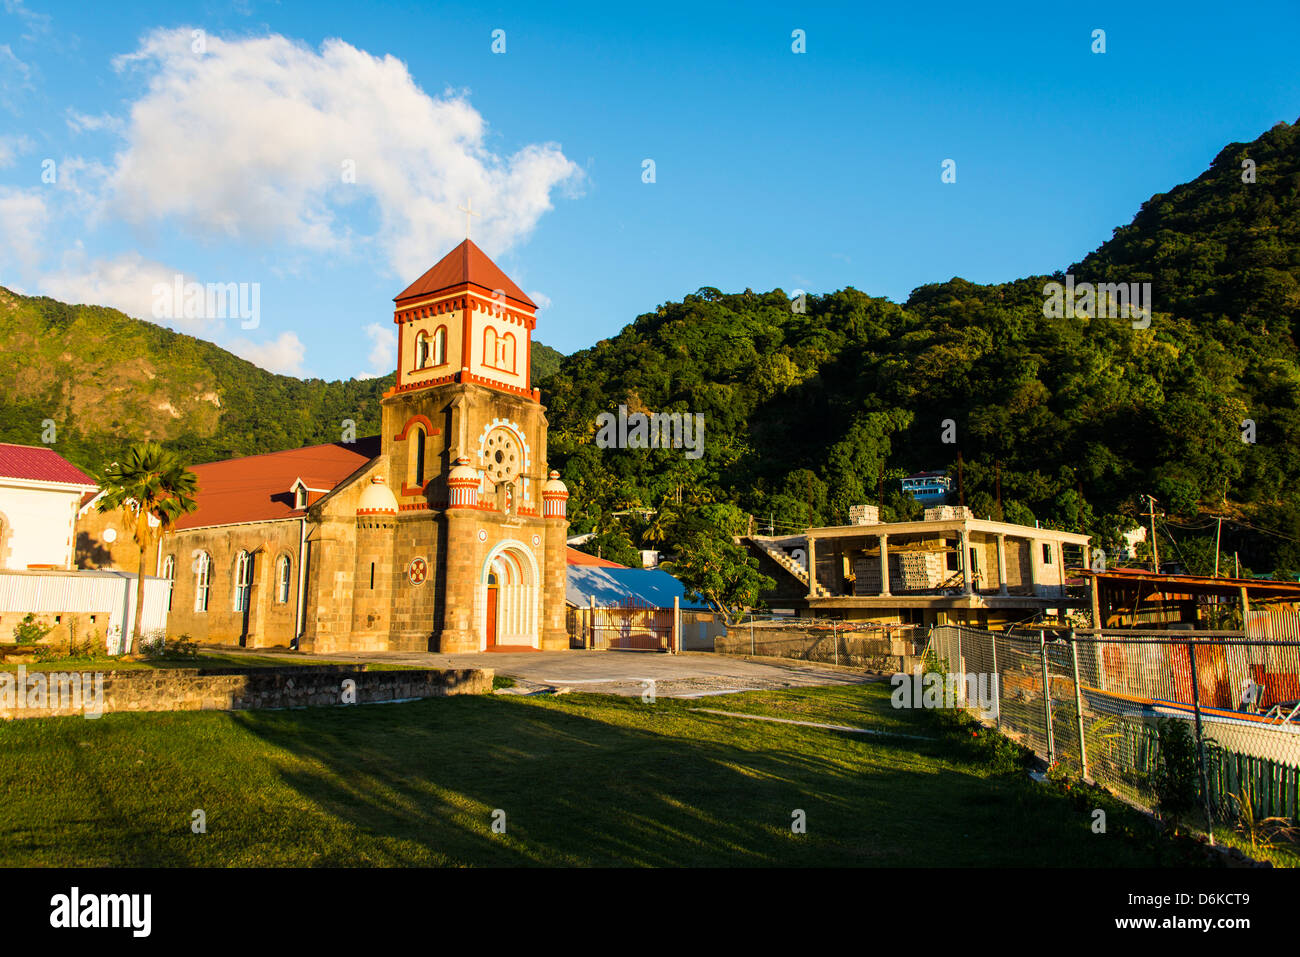 Anglican church in Soufriere, Dominica, West Indies, Caribbean, Central America - Stock Image